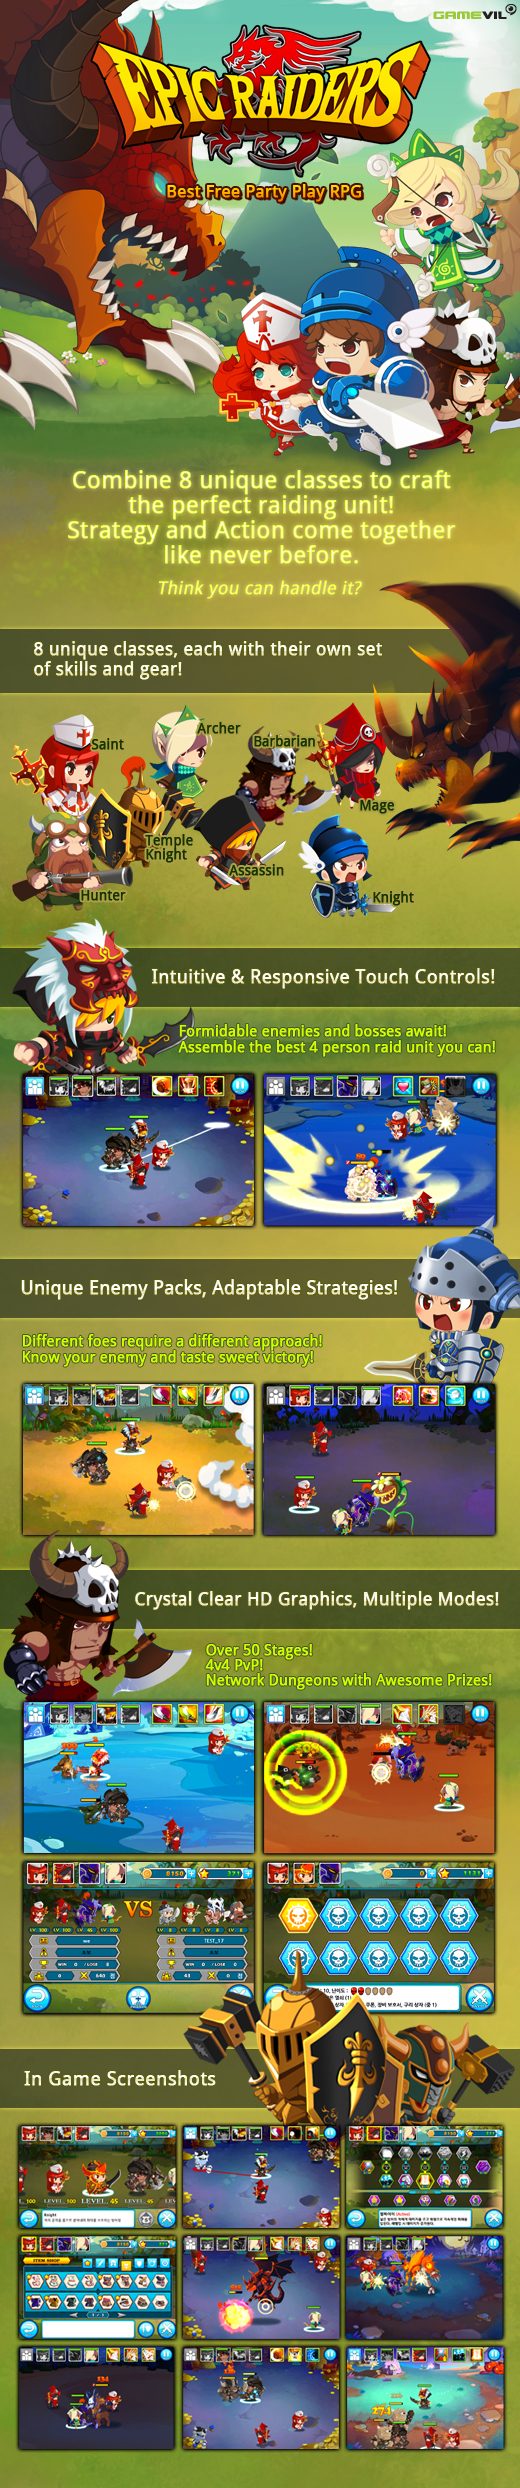 [Games] GAMEVIL - Android Apps & Games | Page 23 | Android ...